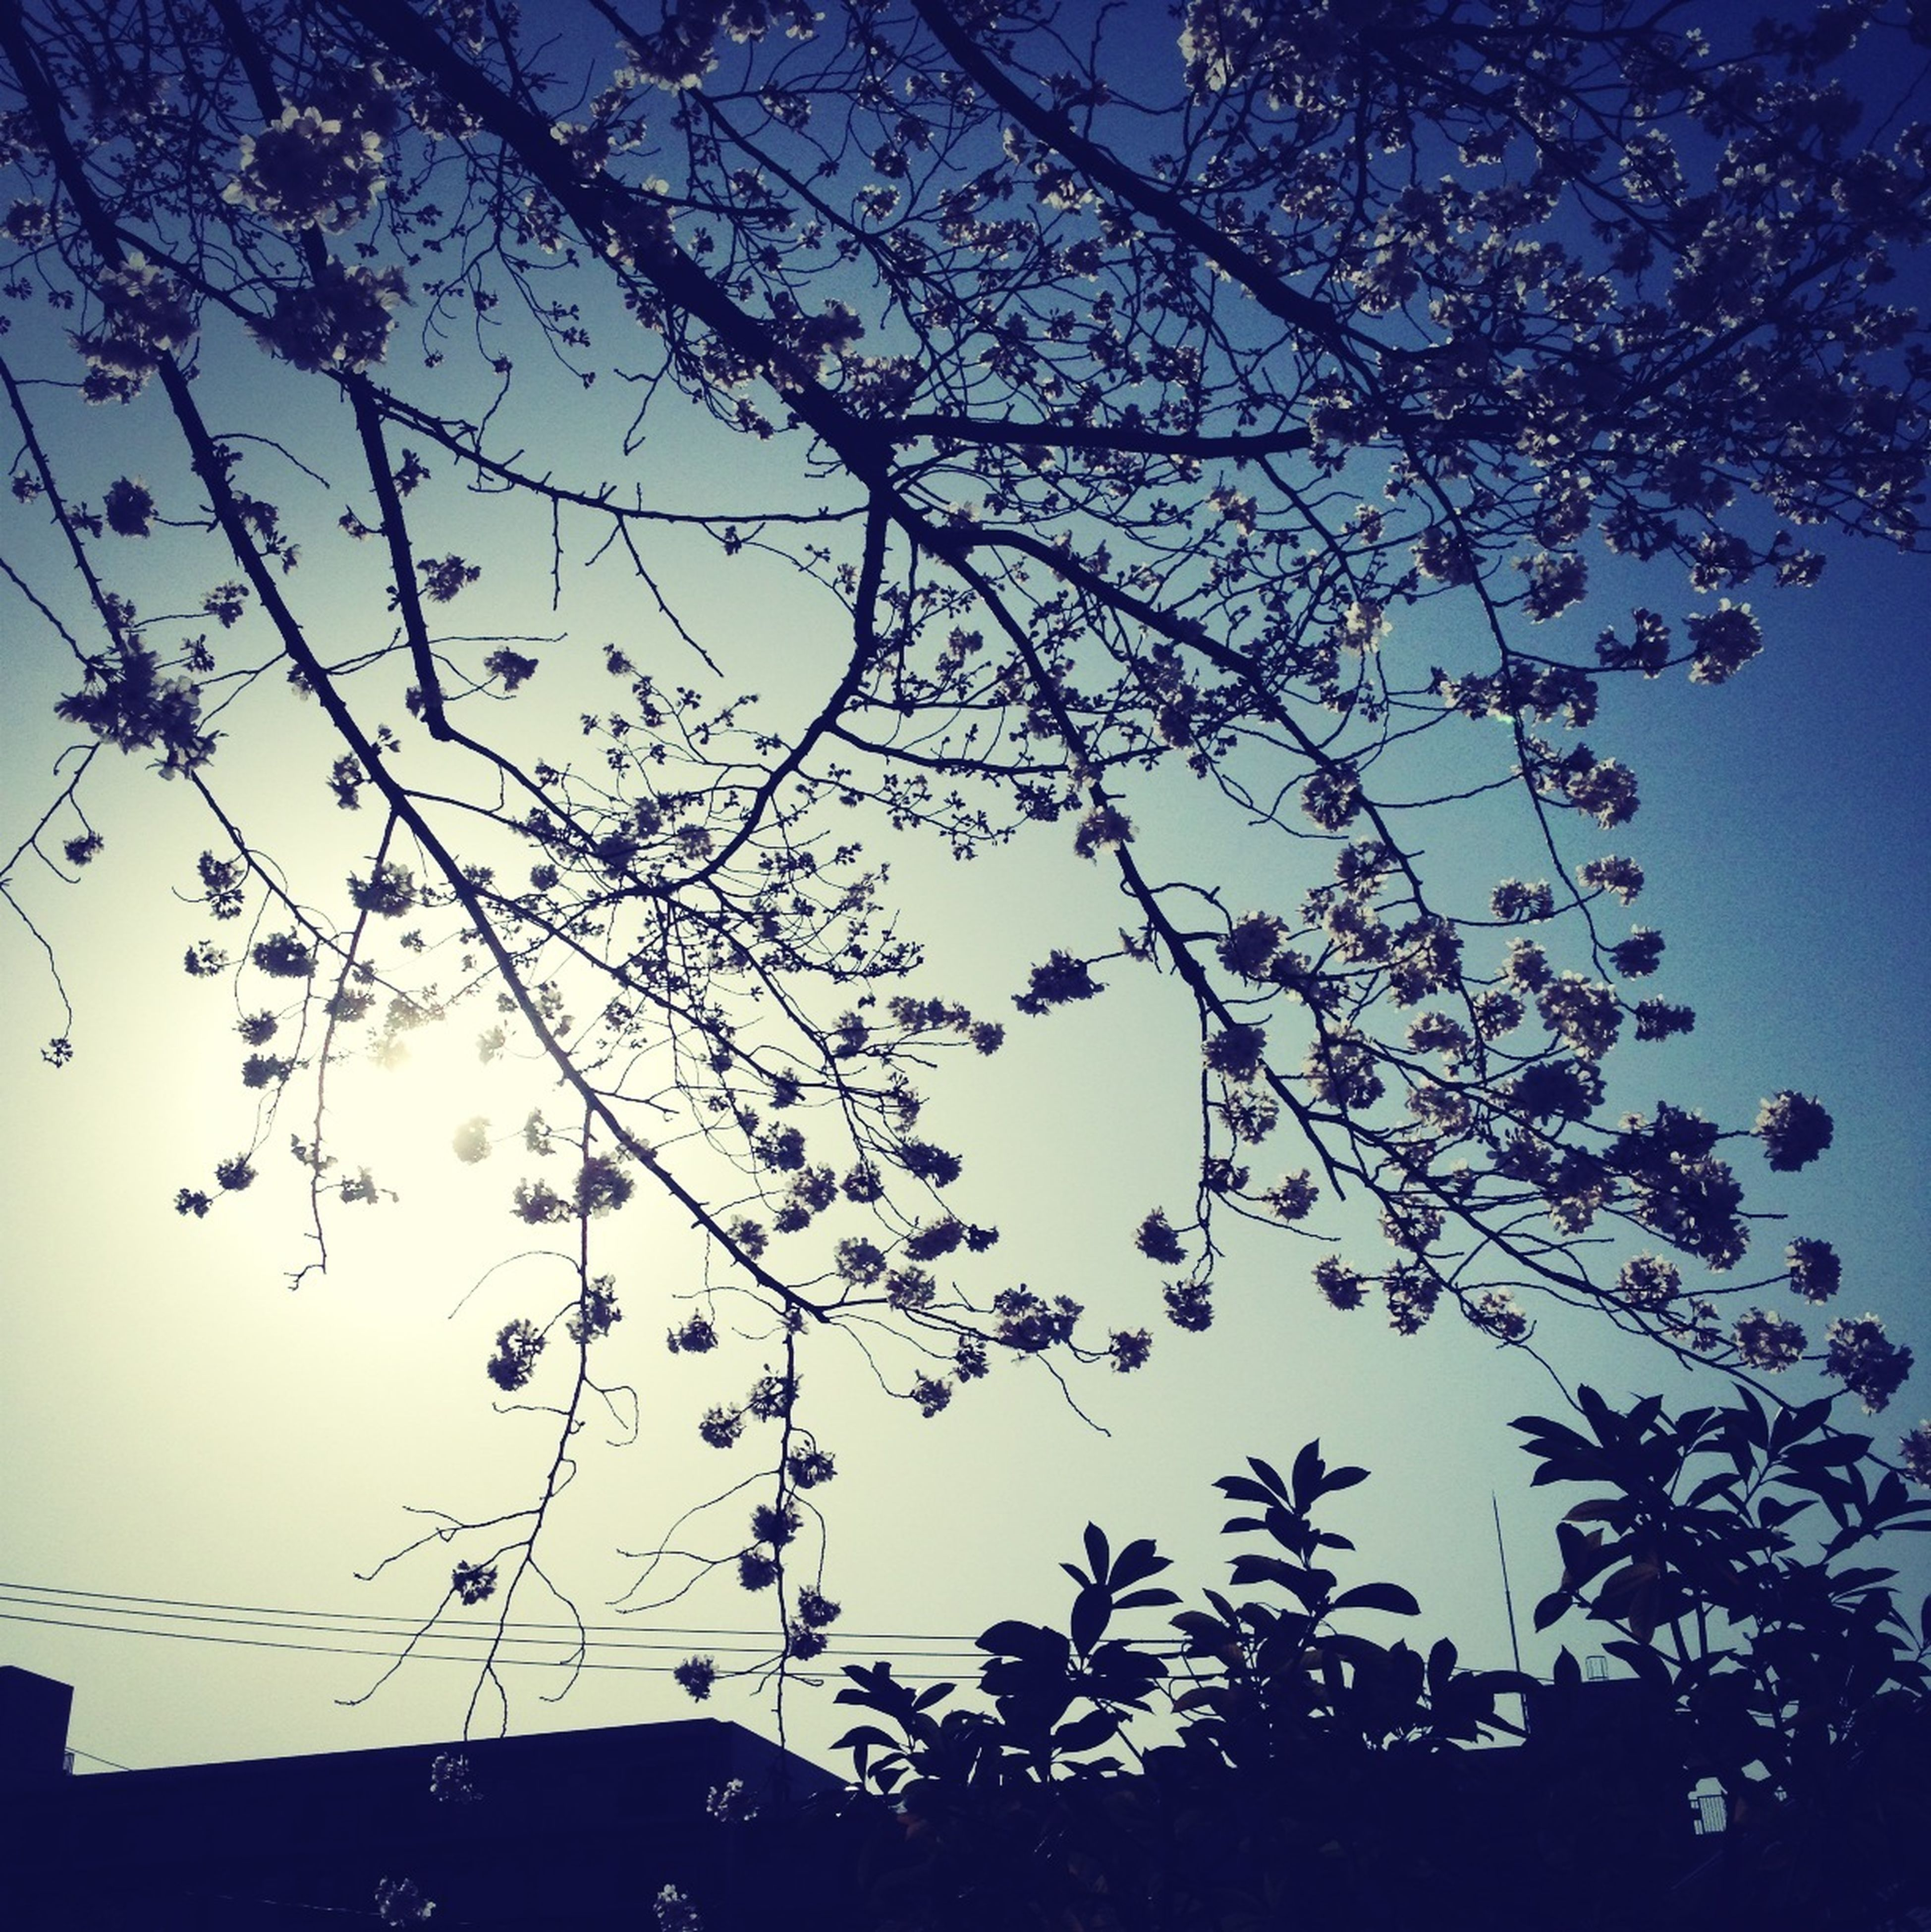 low angle view, silhouette, tree, branch, sky, growth, blue, nature, beauty in nature, dusk, tranquility, clear sky, outdoors, high section, no people, scenics, sunlight, day, bare tree, outline